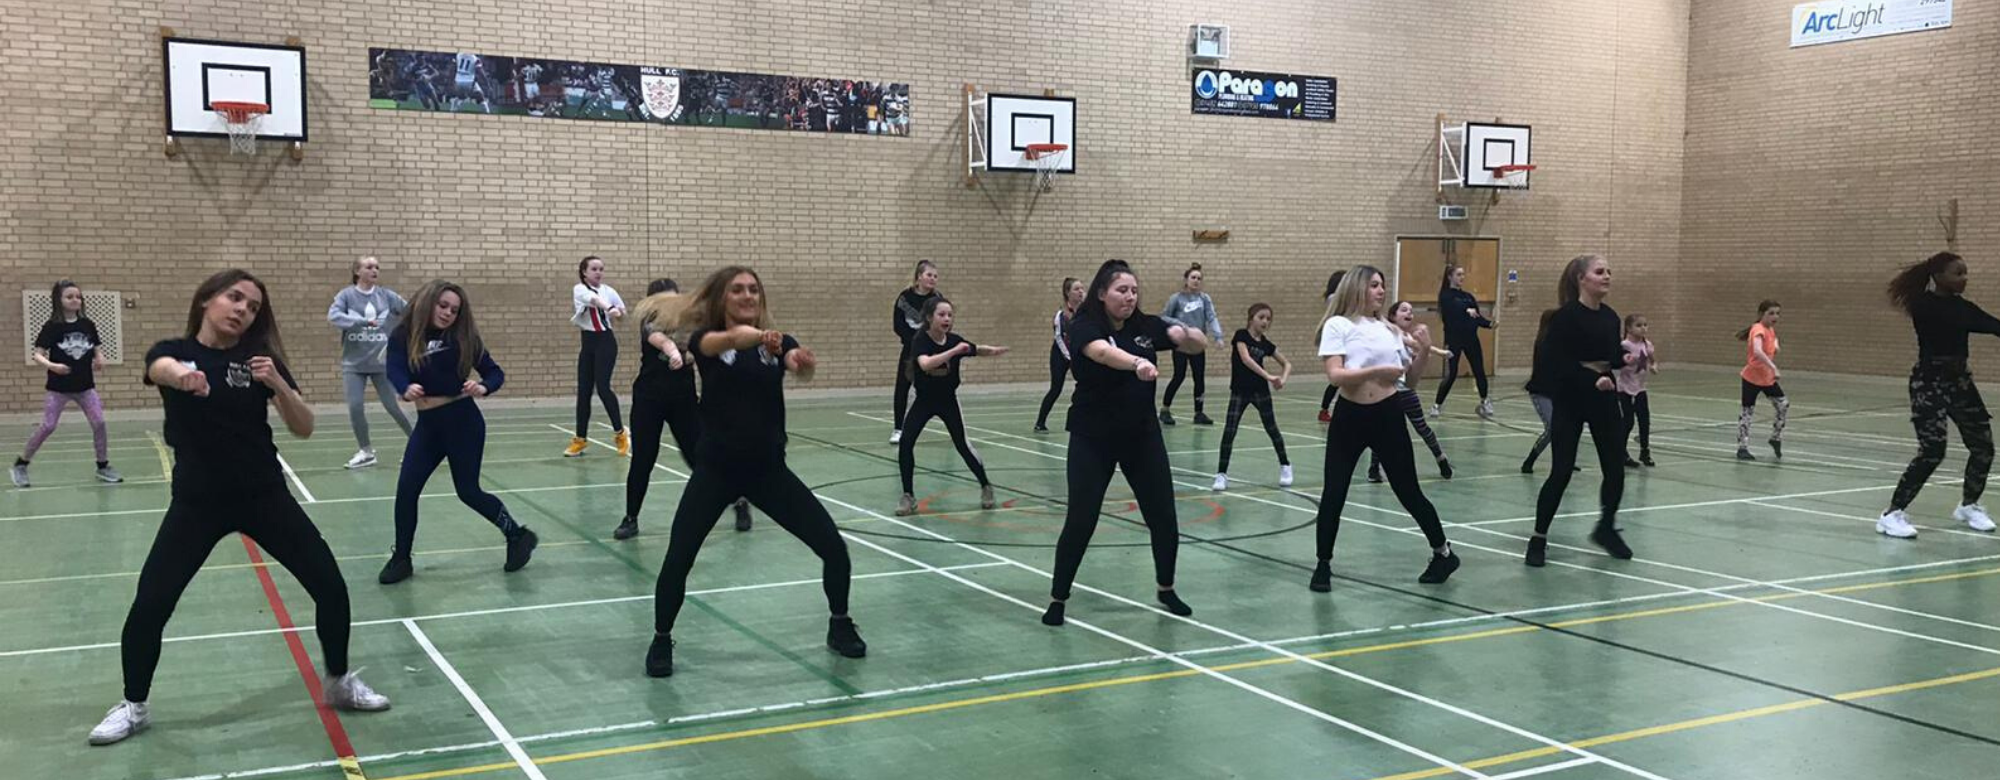 Foundation Launch New Dance & Cheerleading Sessions, With Open Night Coming Up